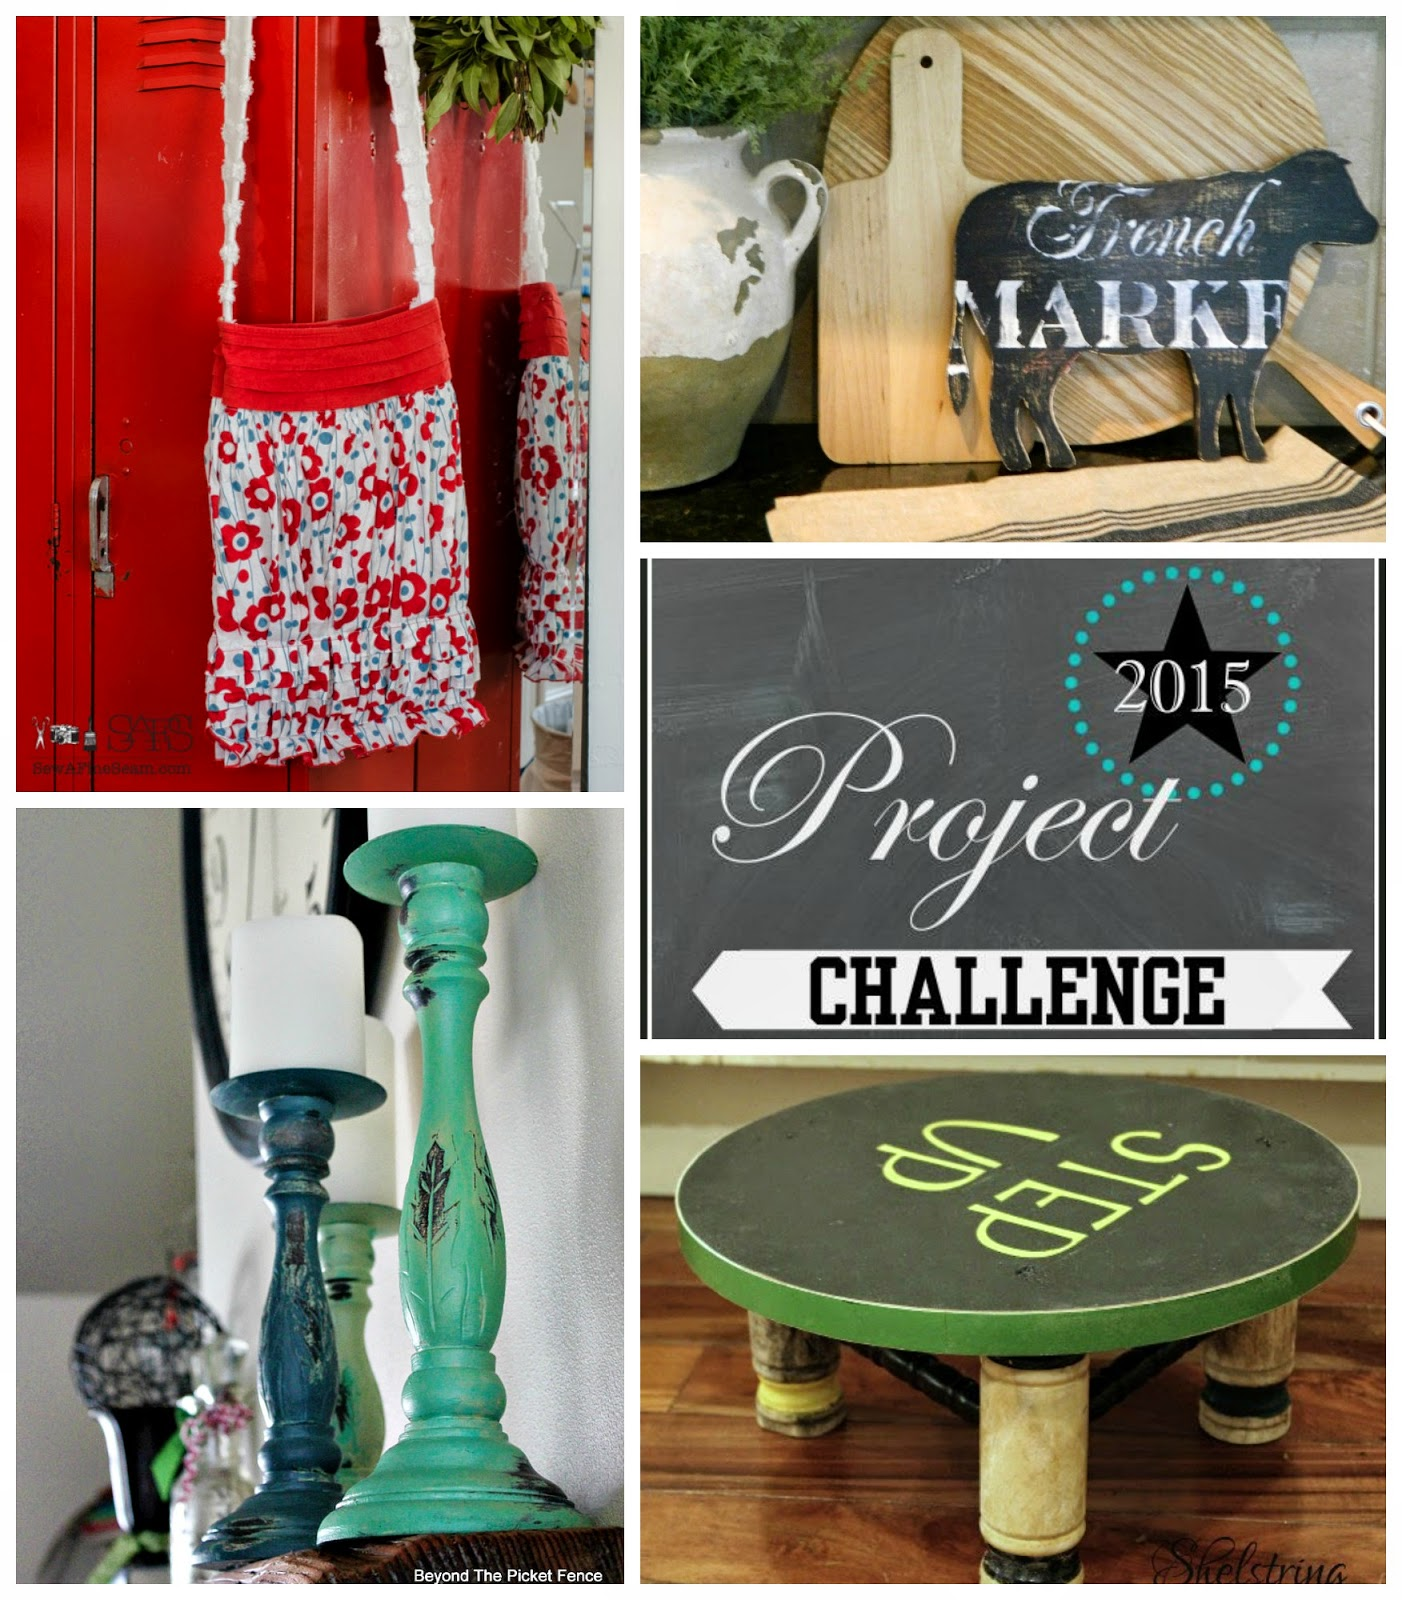 paint, candlesticks, thrift store, beach decor, Beyond The Picket Fence, http://bec4-beyondthepicketfence.blogspot.com/2015/02/project-challenge-2-with-thrift-store.html